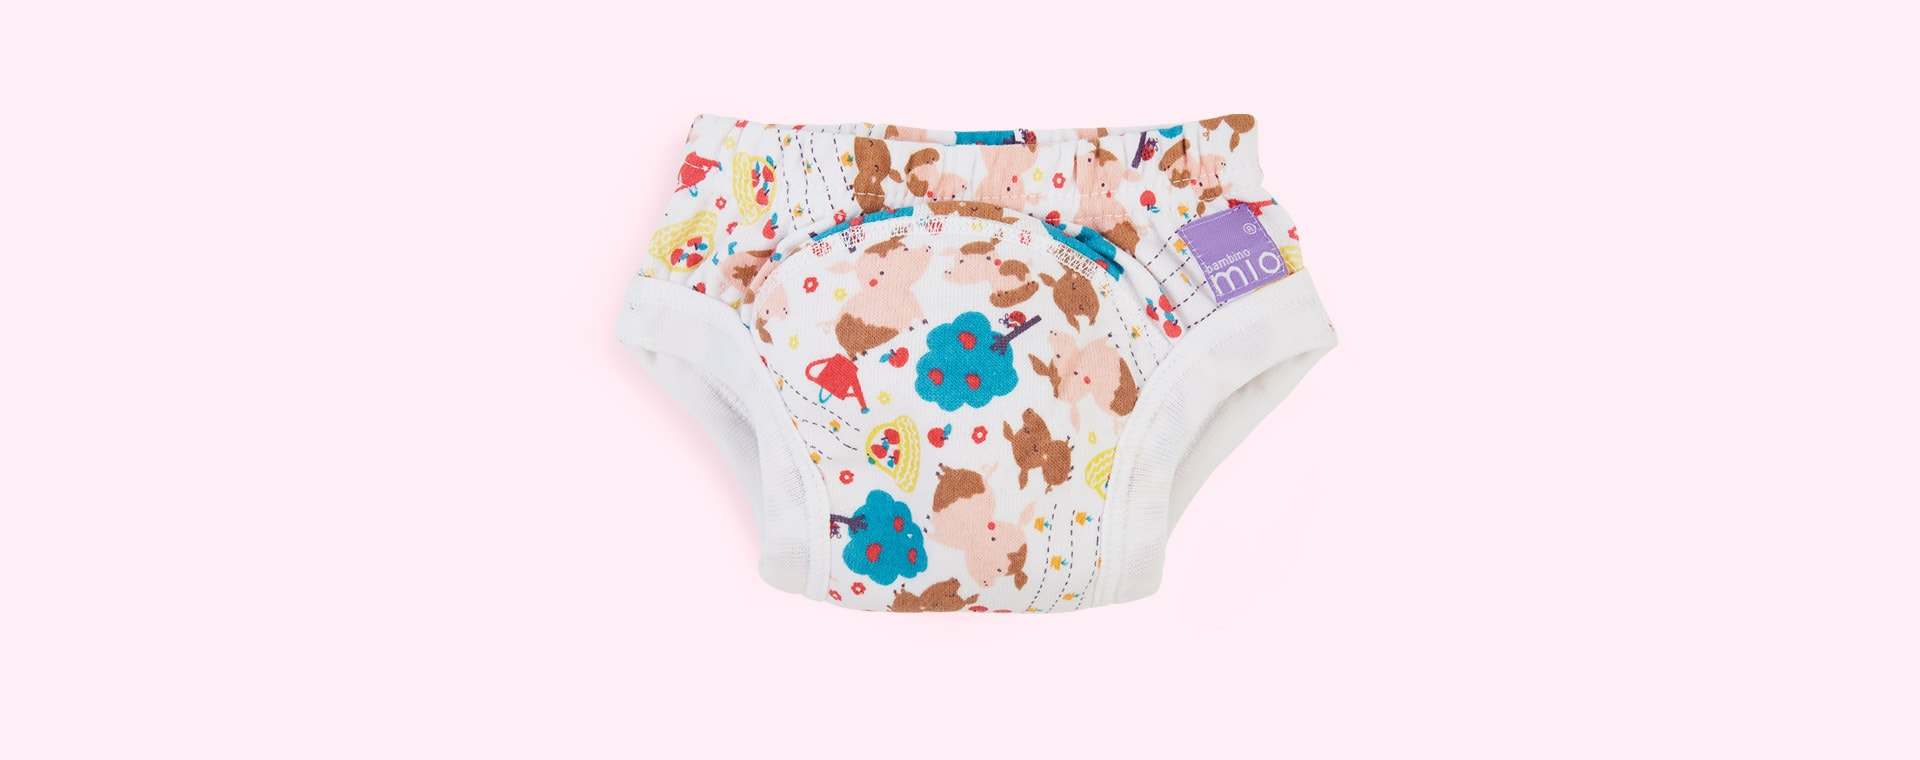 Puddle Pigs Bambino Mio Potty Training Pant